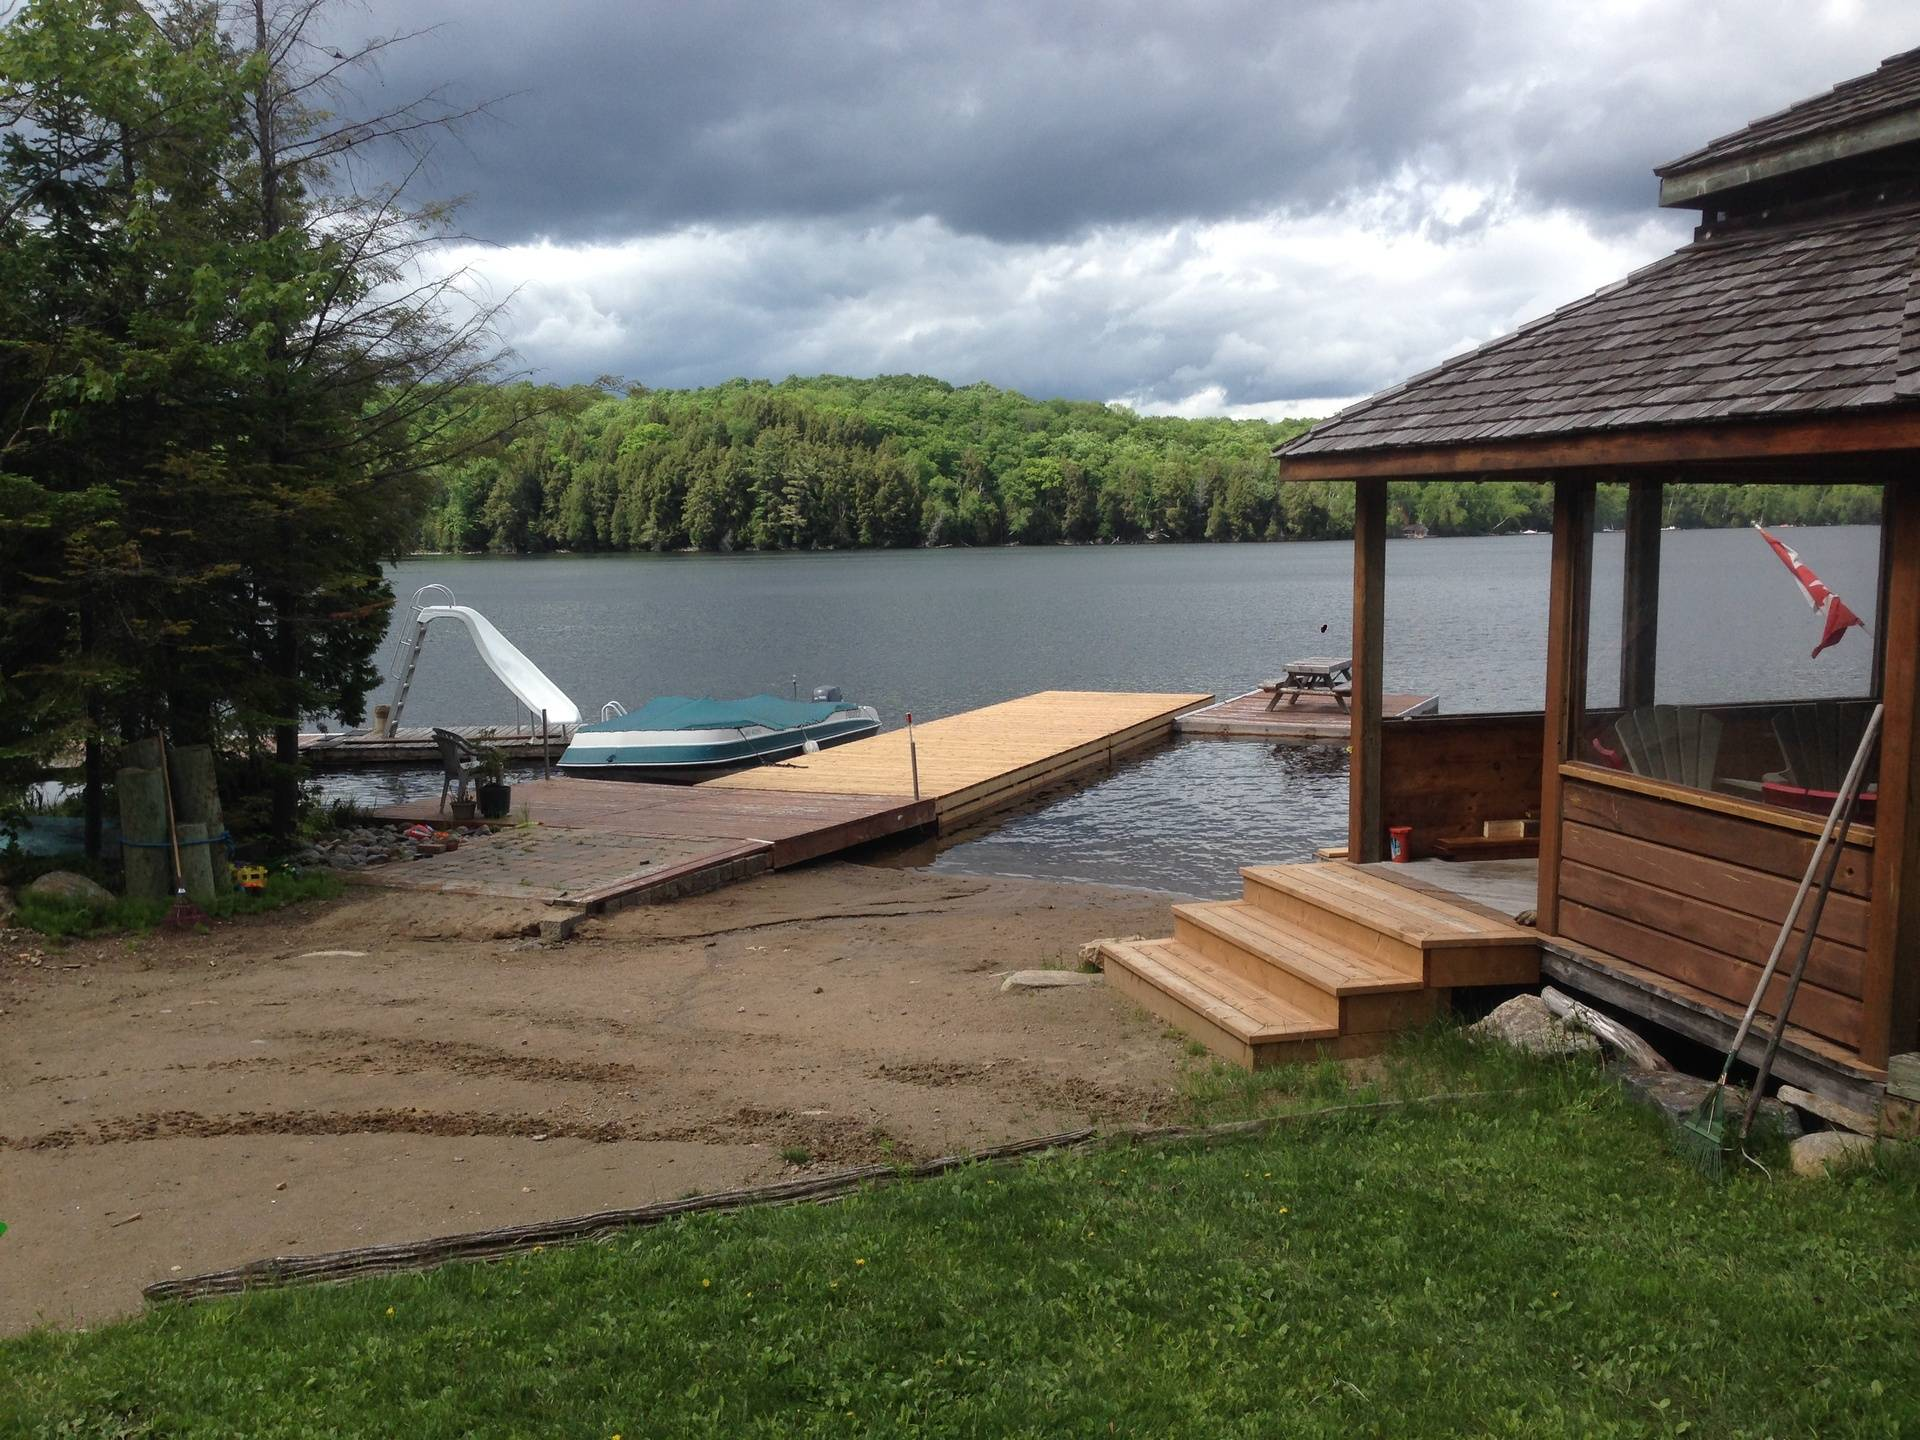 New dock added to existing landing